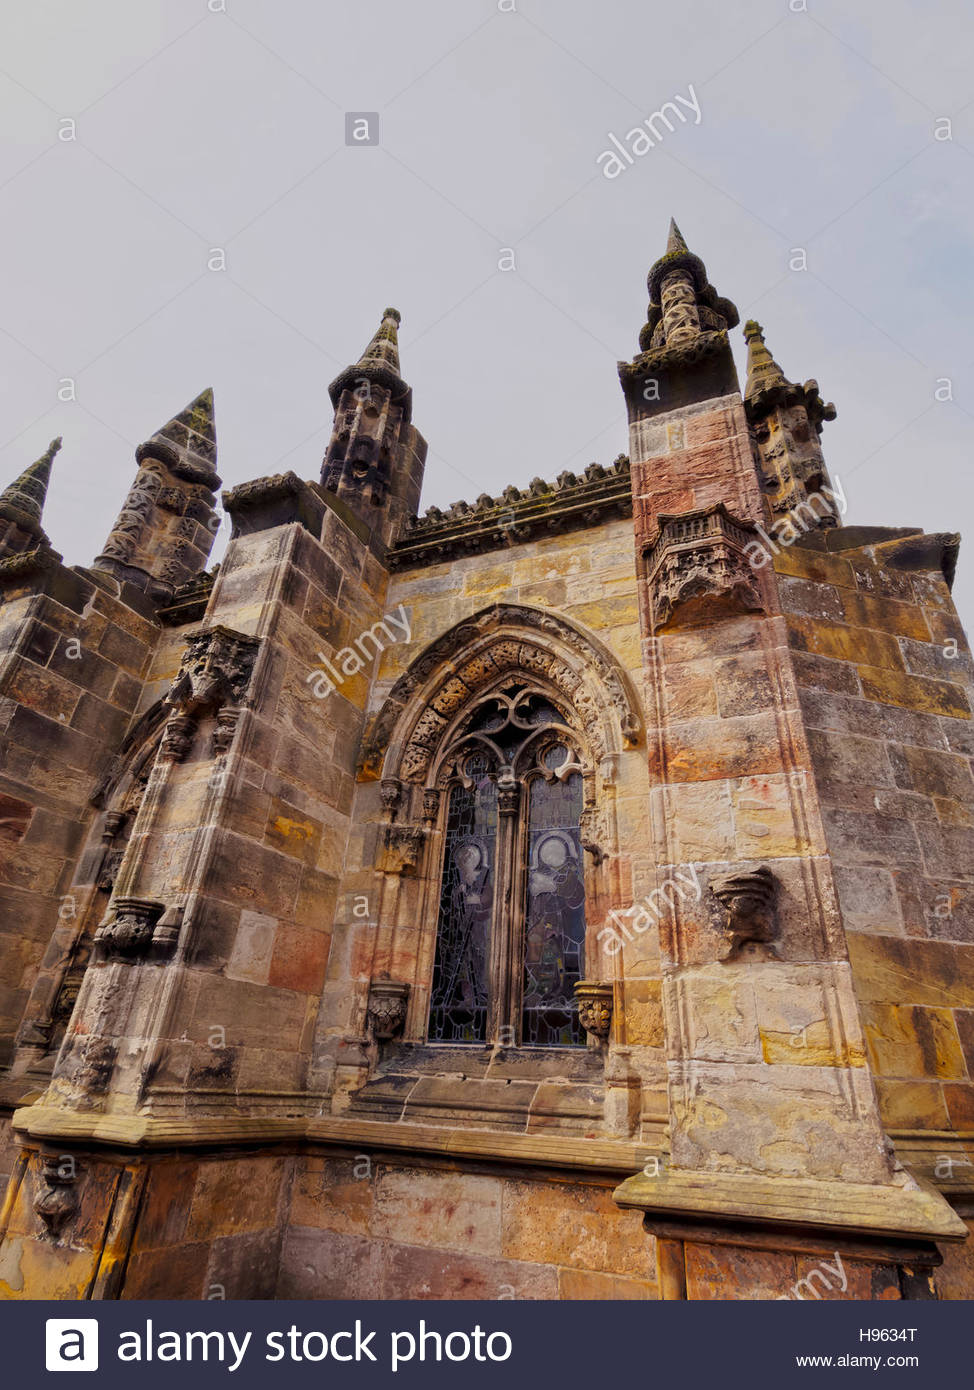 UK, Scotland, Midothian, Edinburgh Area, Roslin, View of the Rosslyn Chapel. - Stock Image